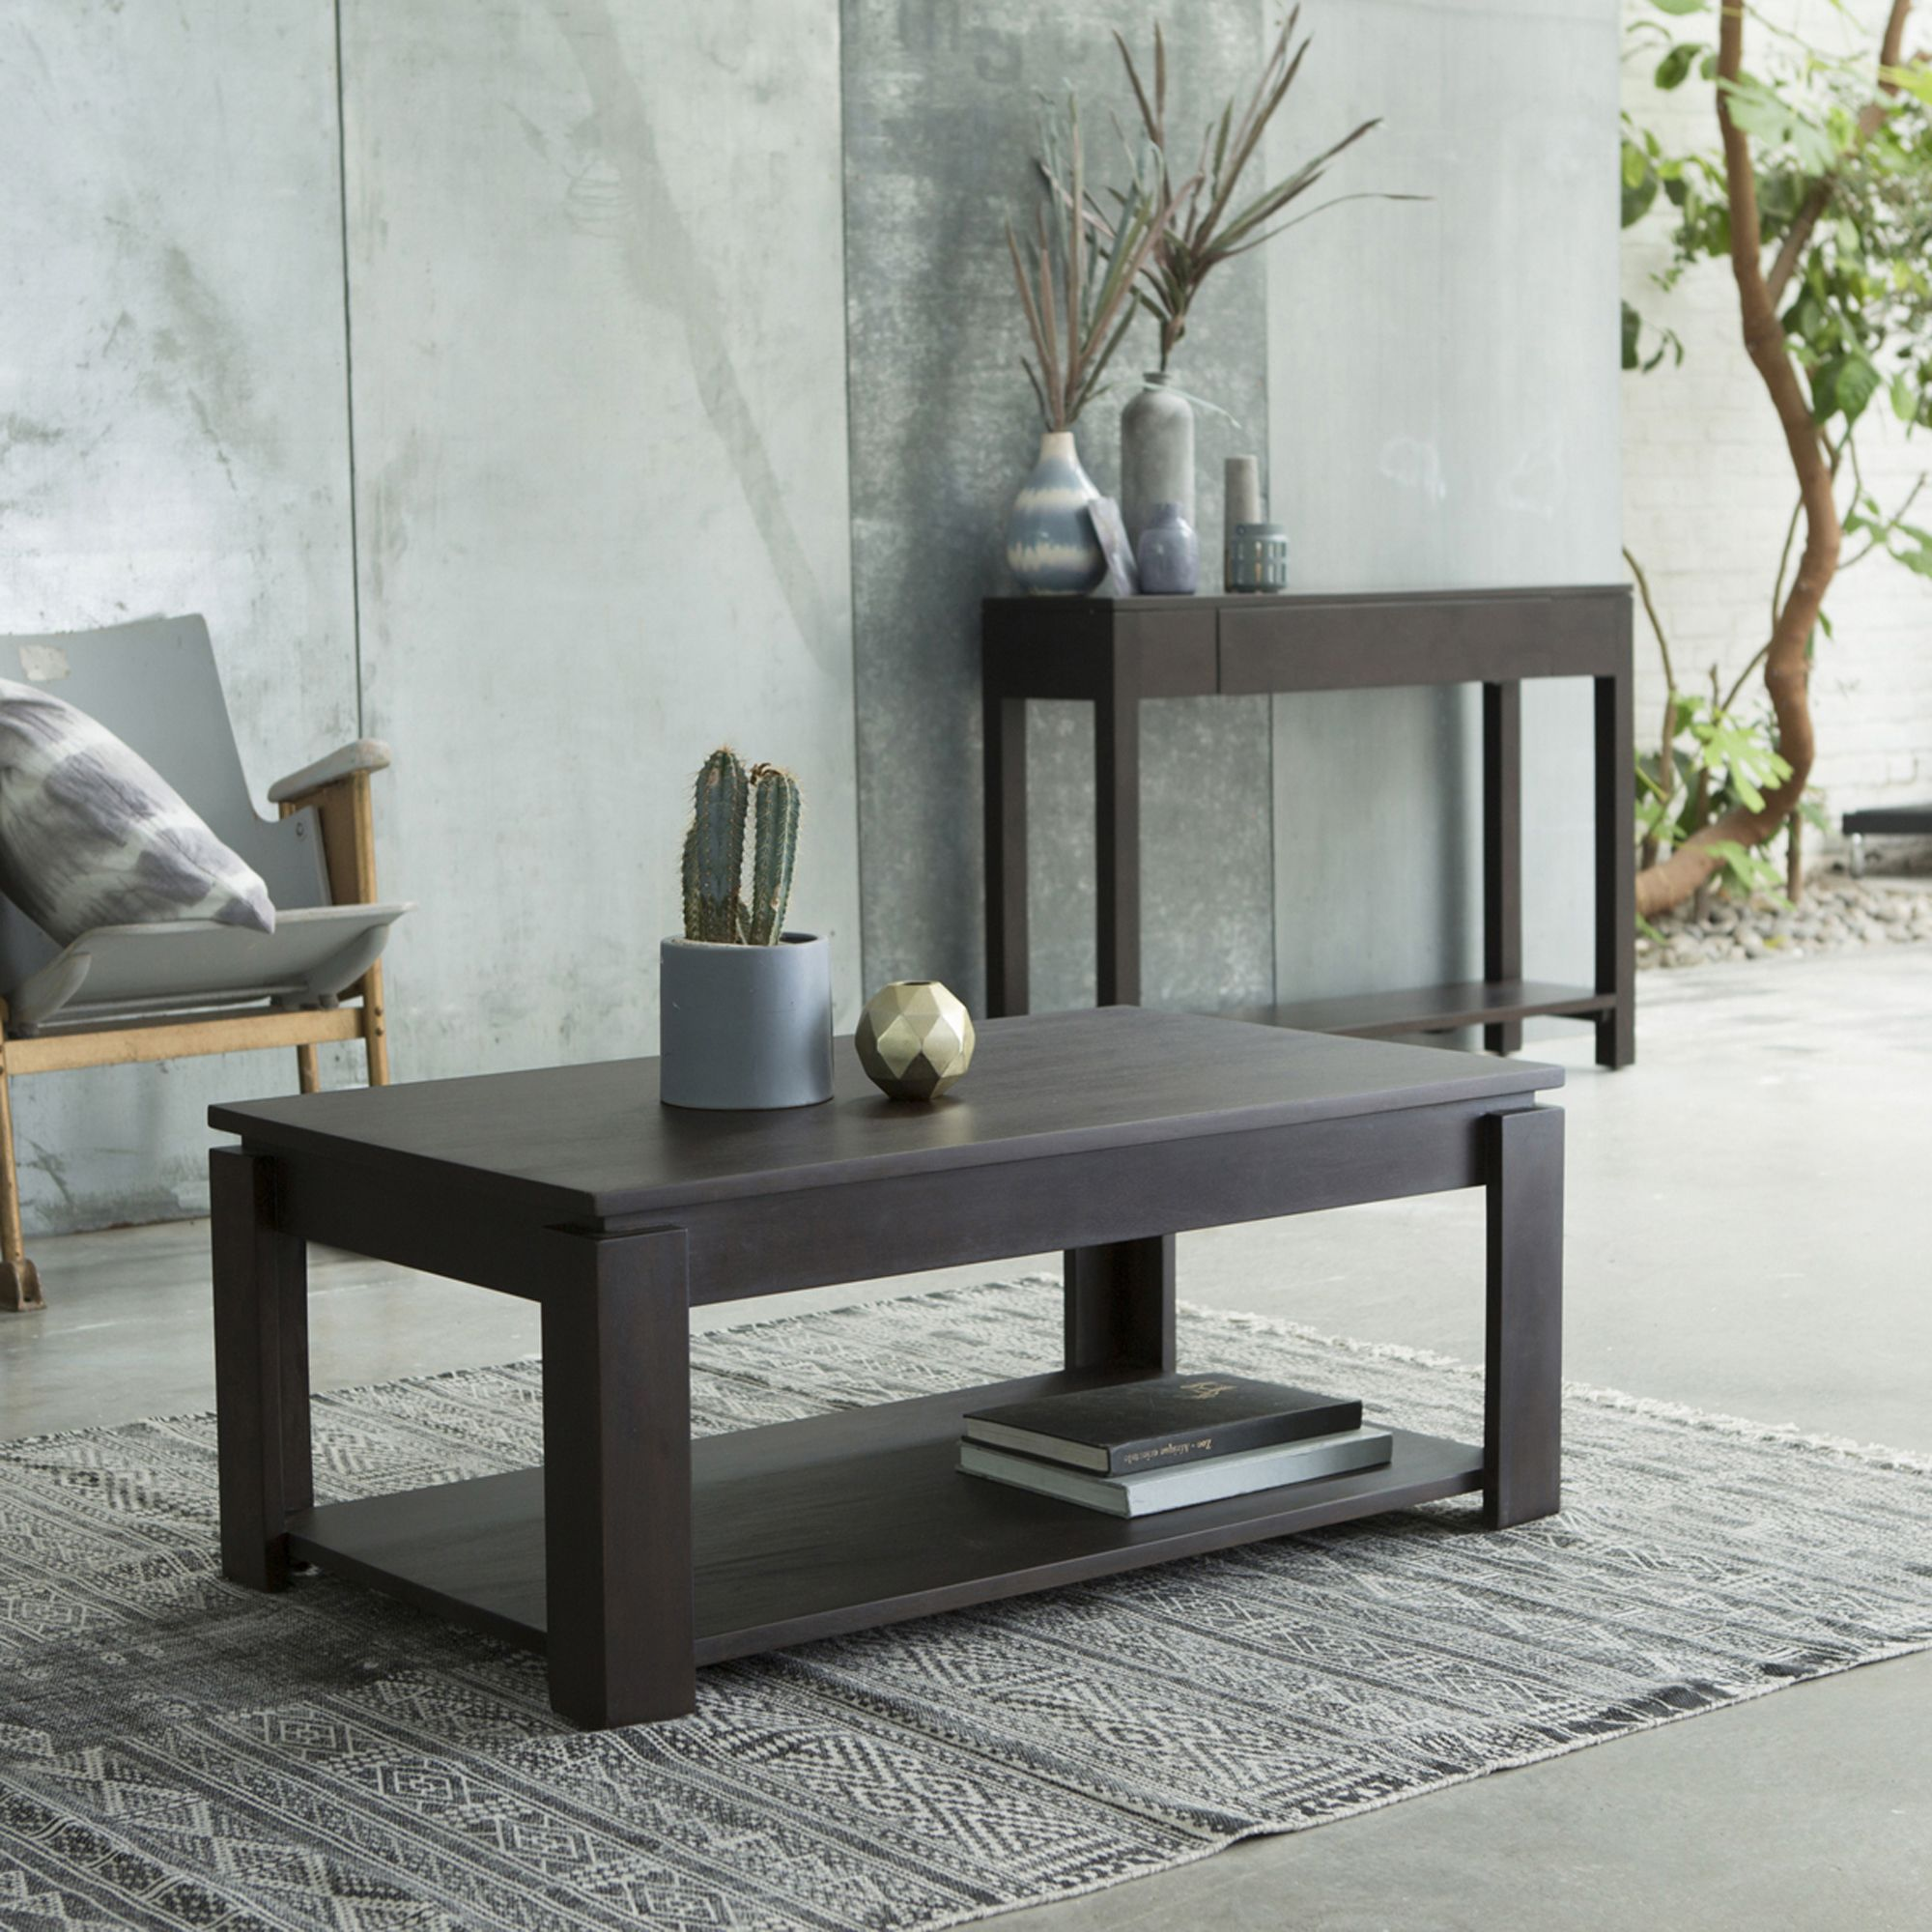 With Its Lower Shelf The Atlas Coffee Table Gives You Plenty Of